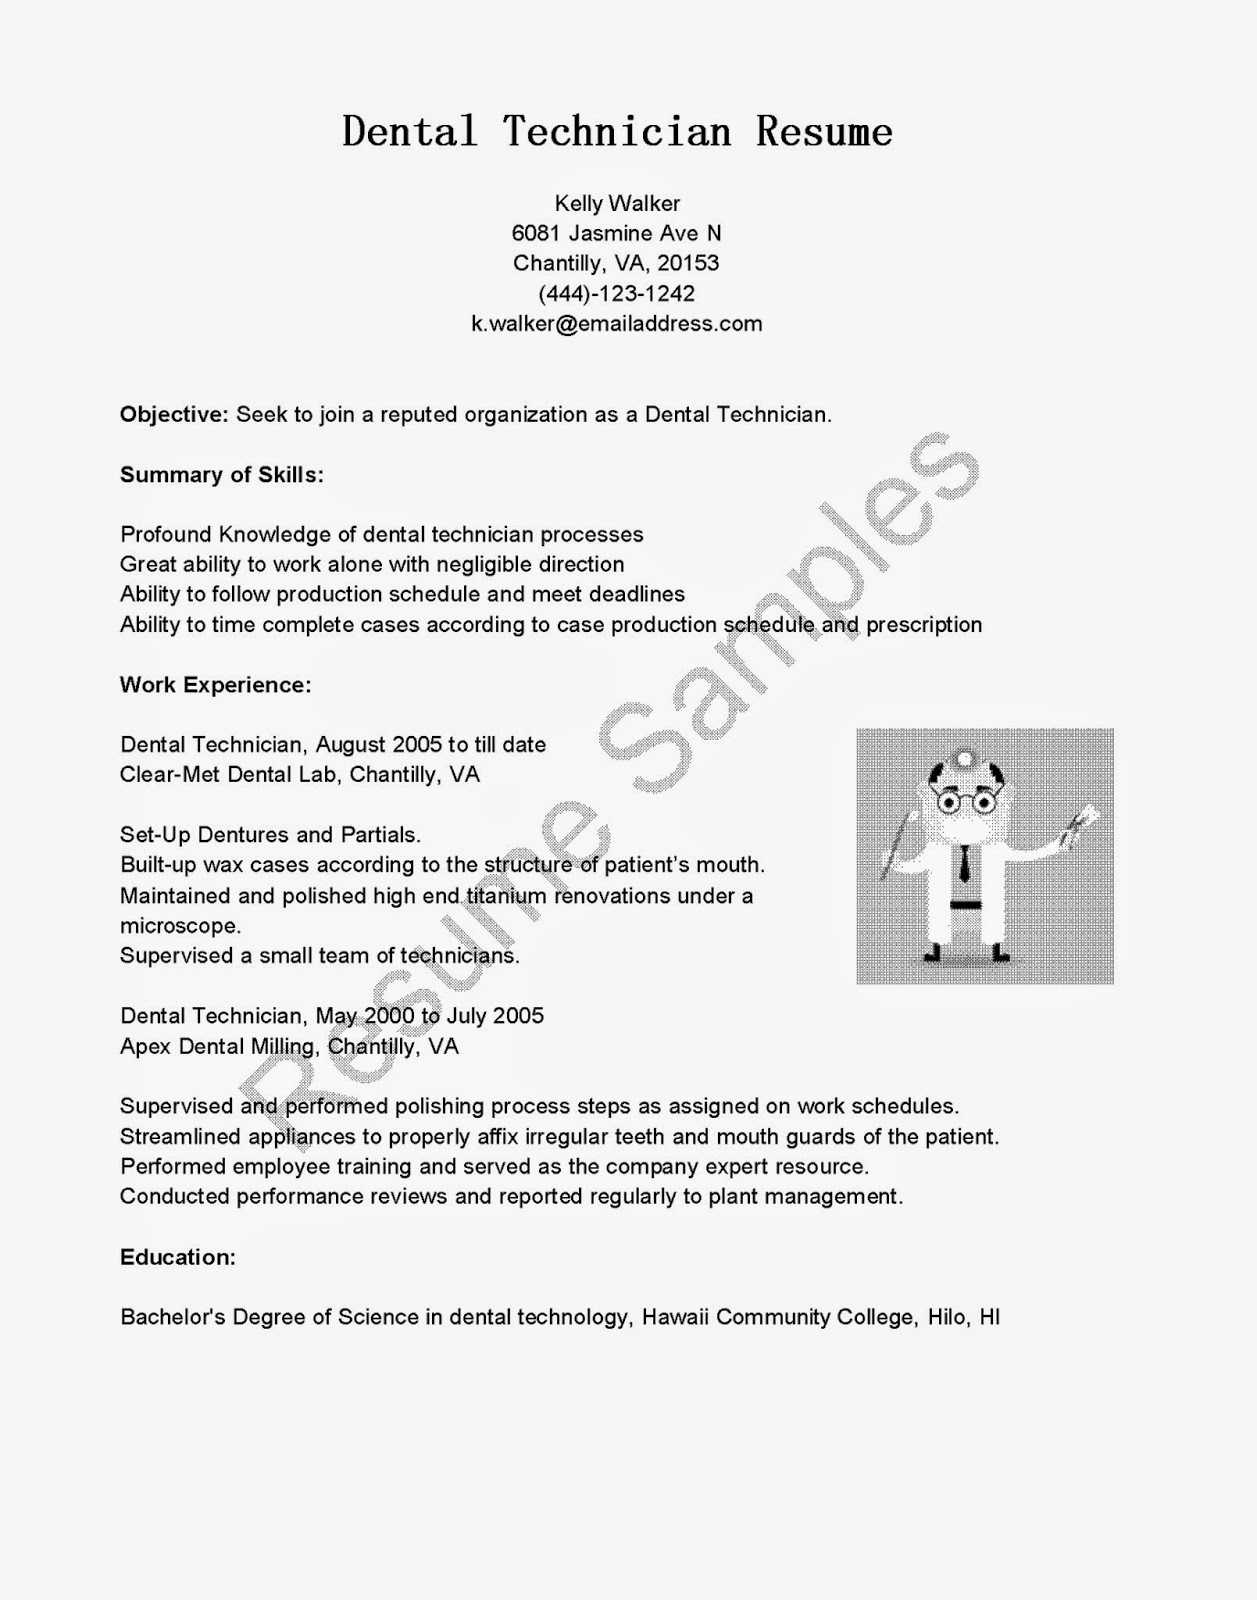 dentist resume examples free resume samples modern nursing teachers free resume samples entry level dental assistant - Dental Hygienist Resume Samples